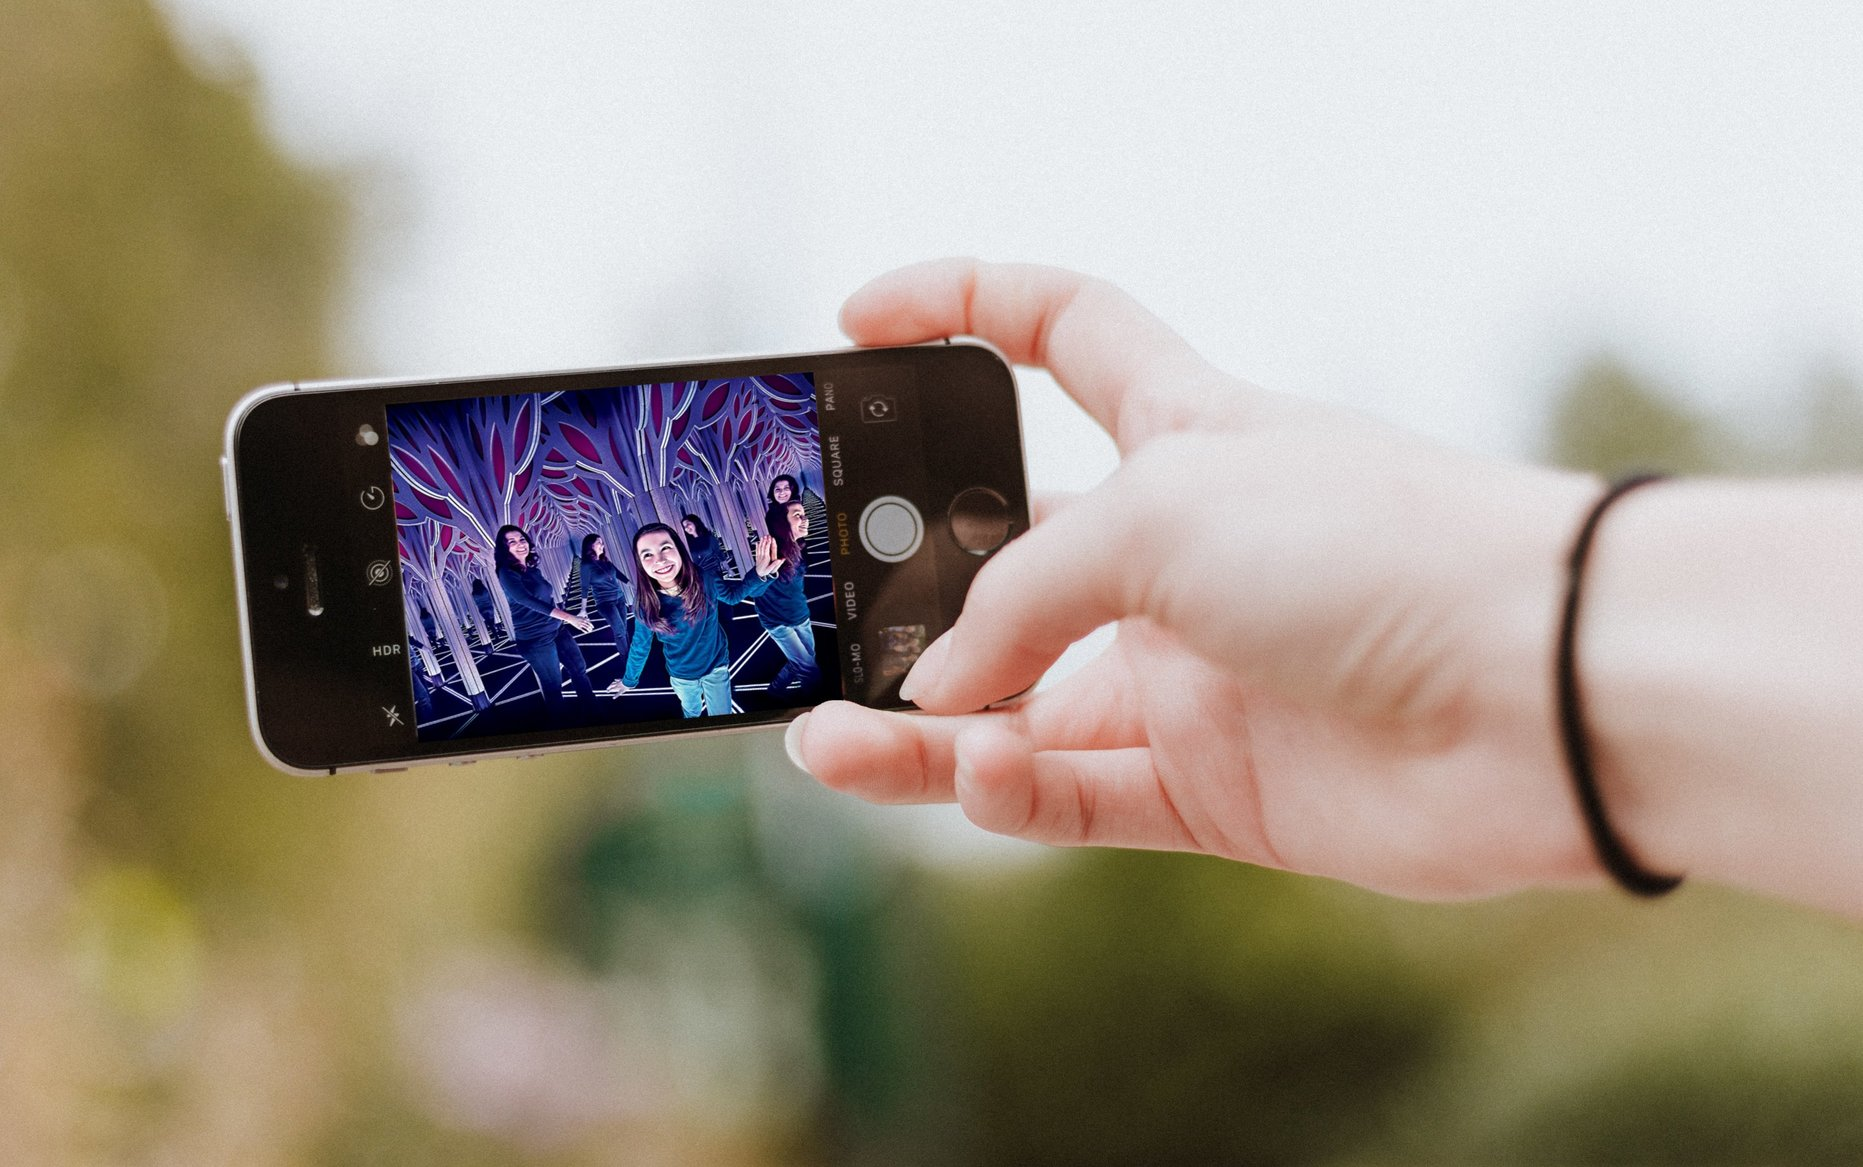 A person's hand holds a smartphone displaying a photograph of one child and one adult frolicking in a mirrored art installation that appears to stretch into infinity, an example of the sort of installations that attract outsize attendance and social media pickup.